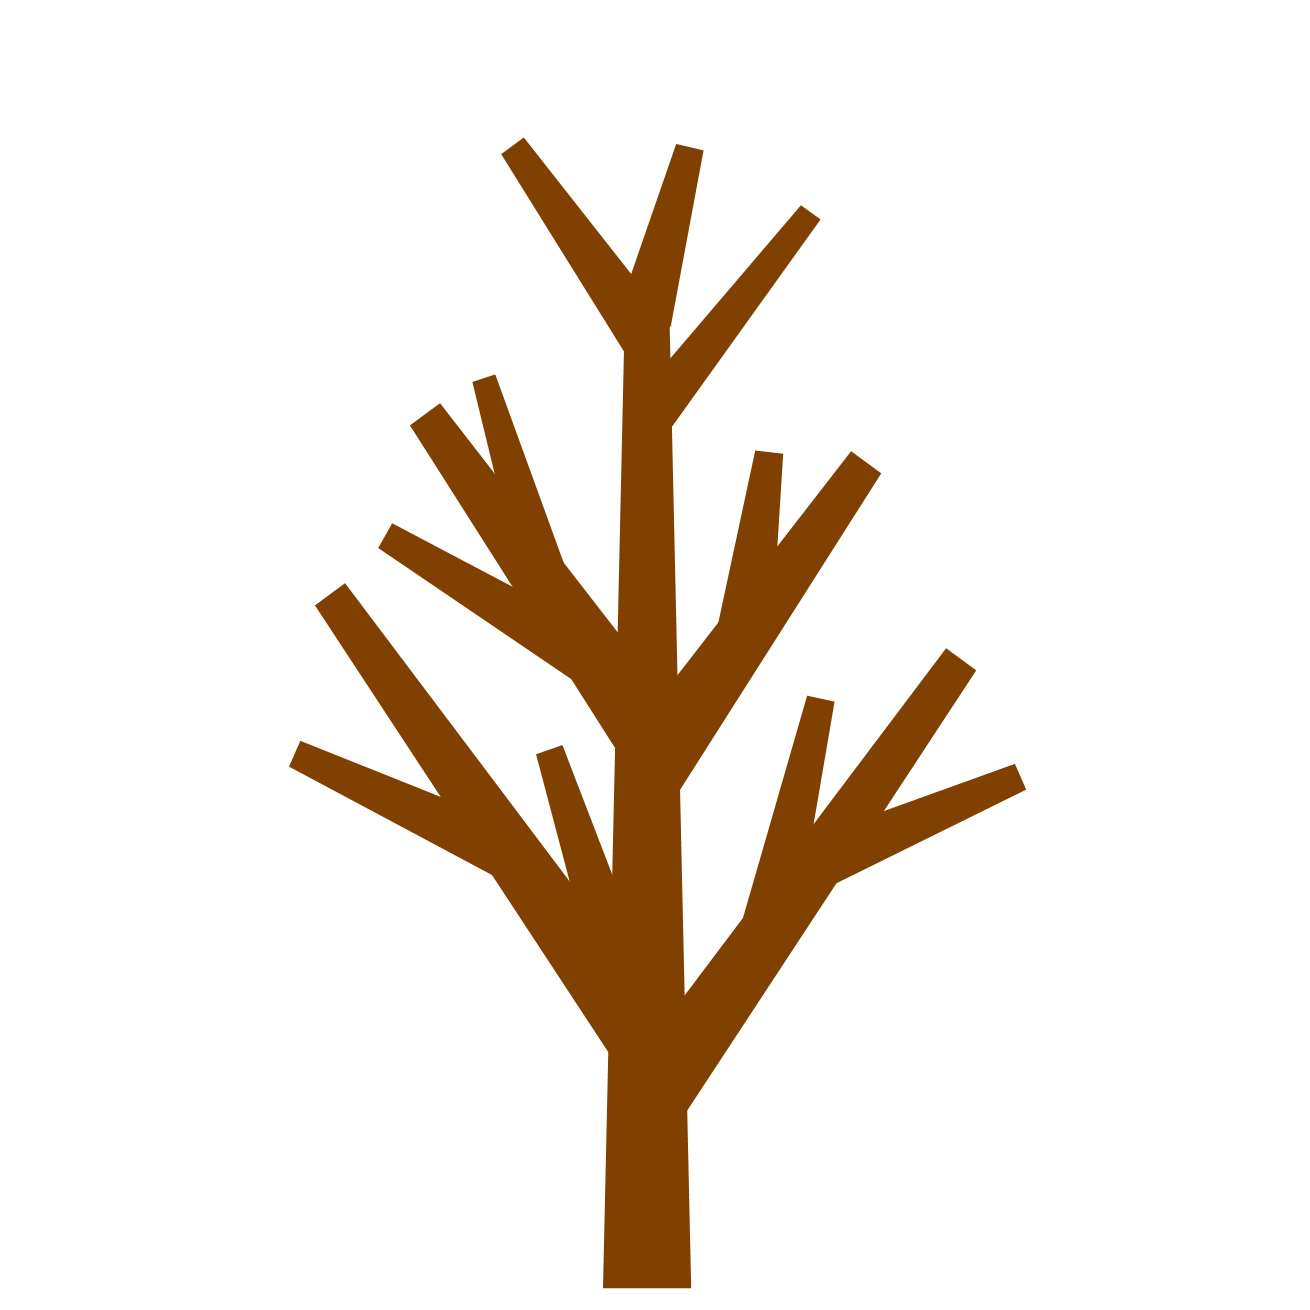 Brown tree clipart jpg free 28+ Collection of Brown Tree Without Leaves Clipart | High quality ... jpg free